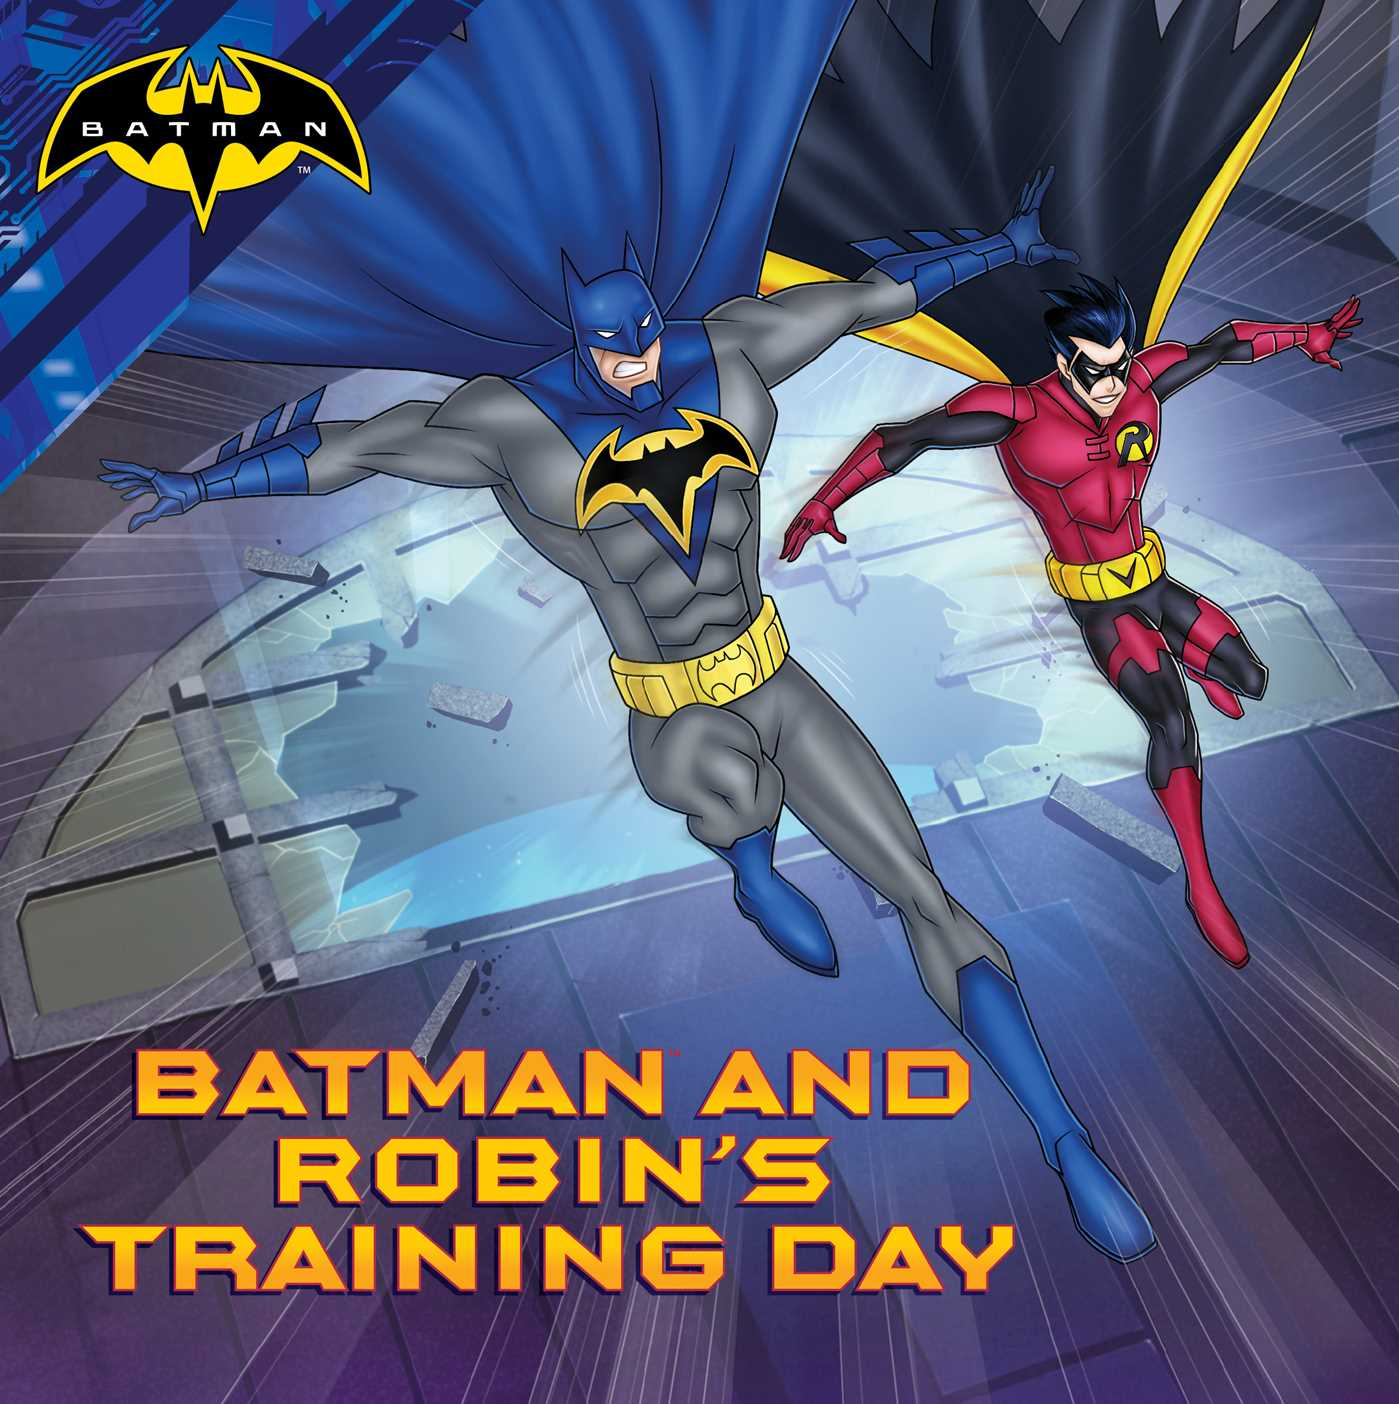 Batman and robins training day 9781481496308 hr